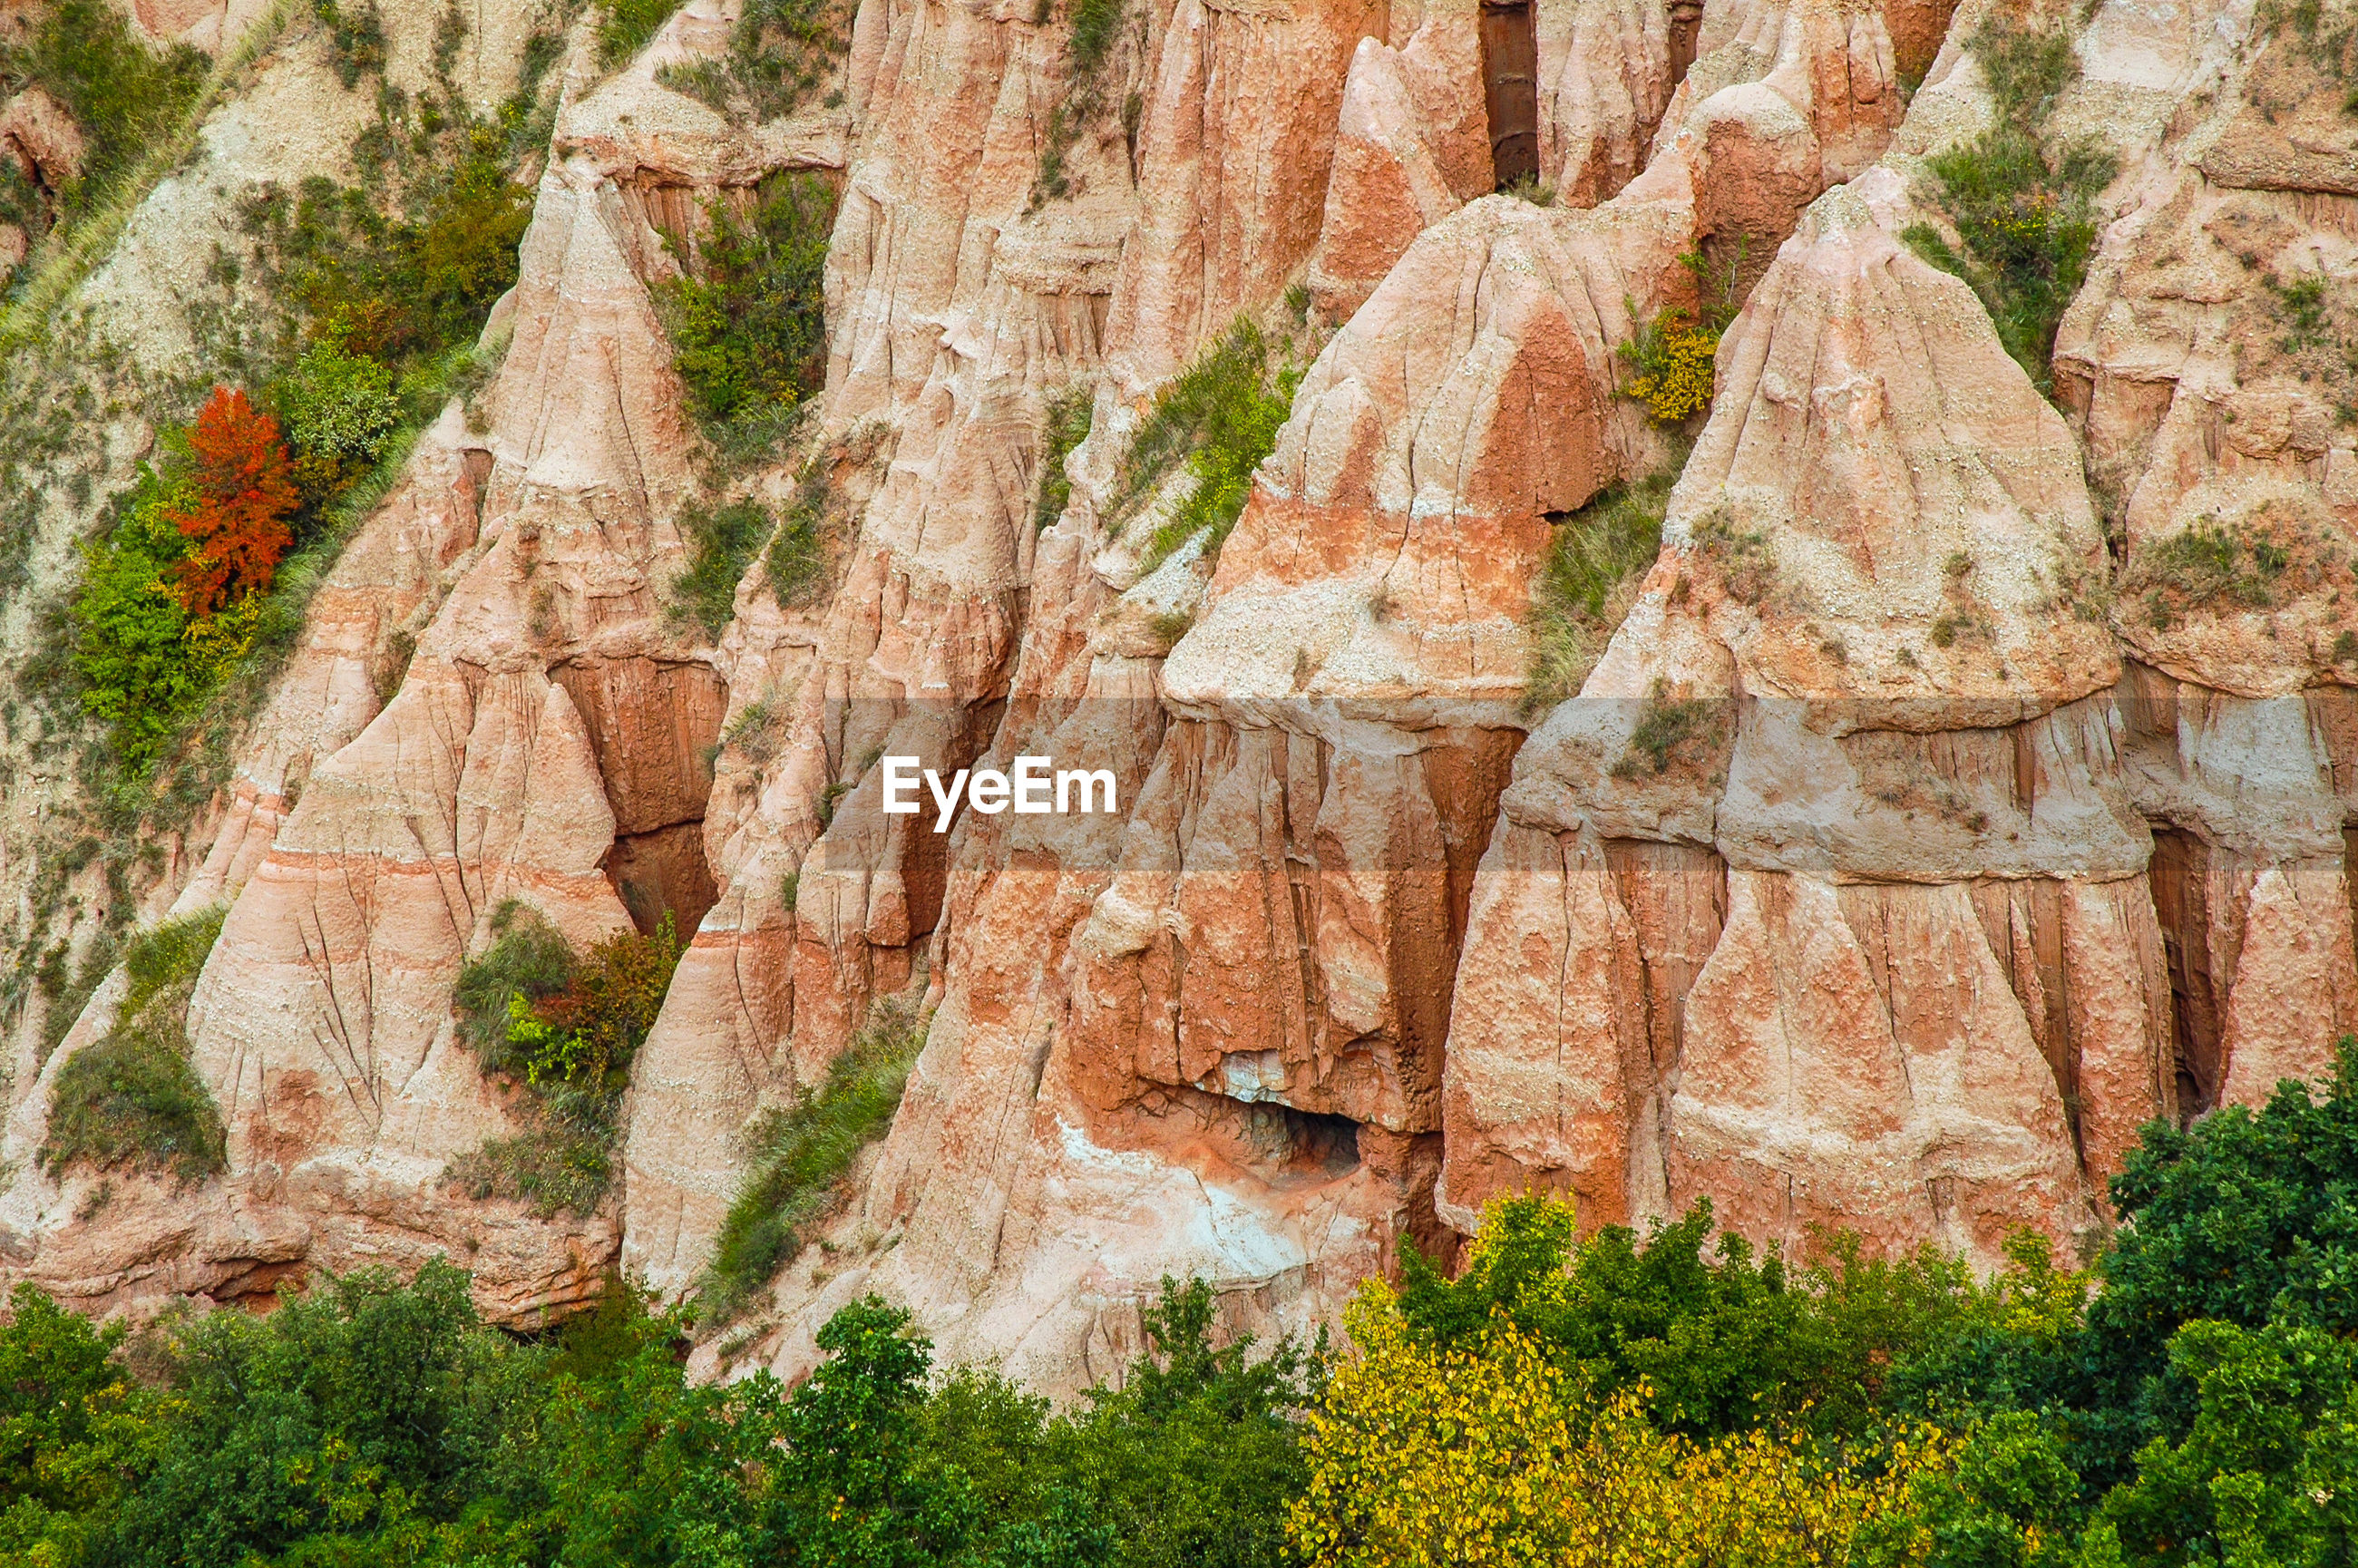 Scenic view of rock formations